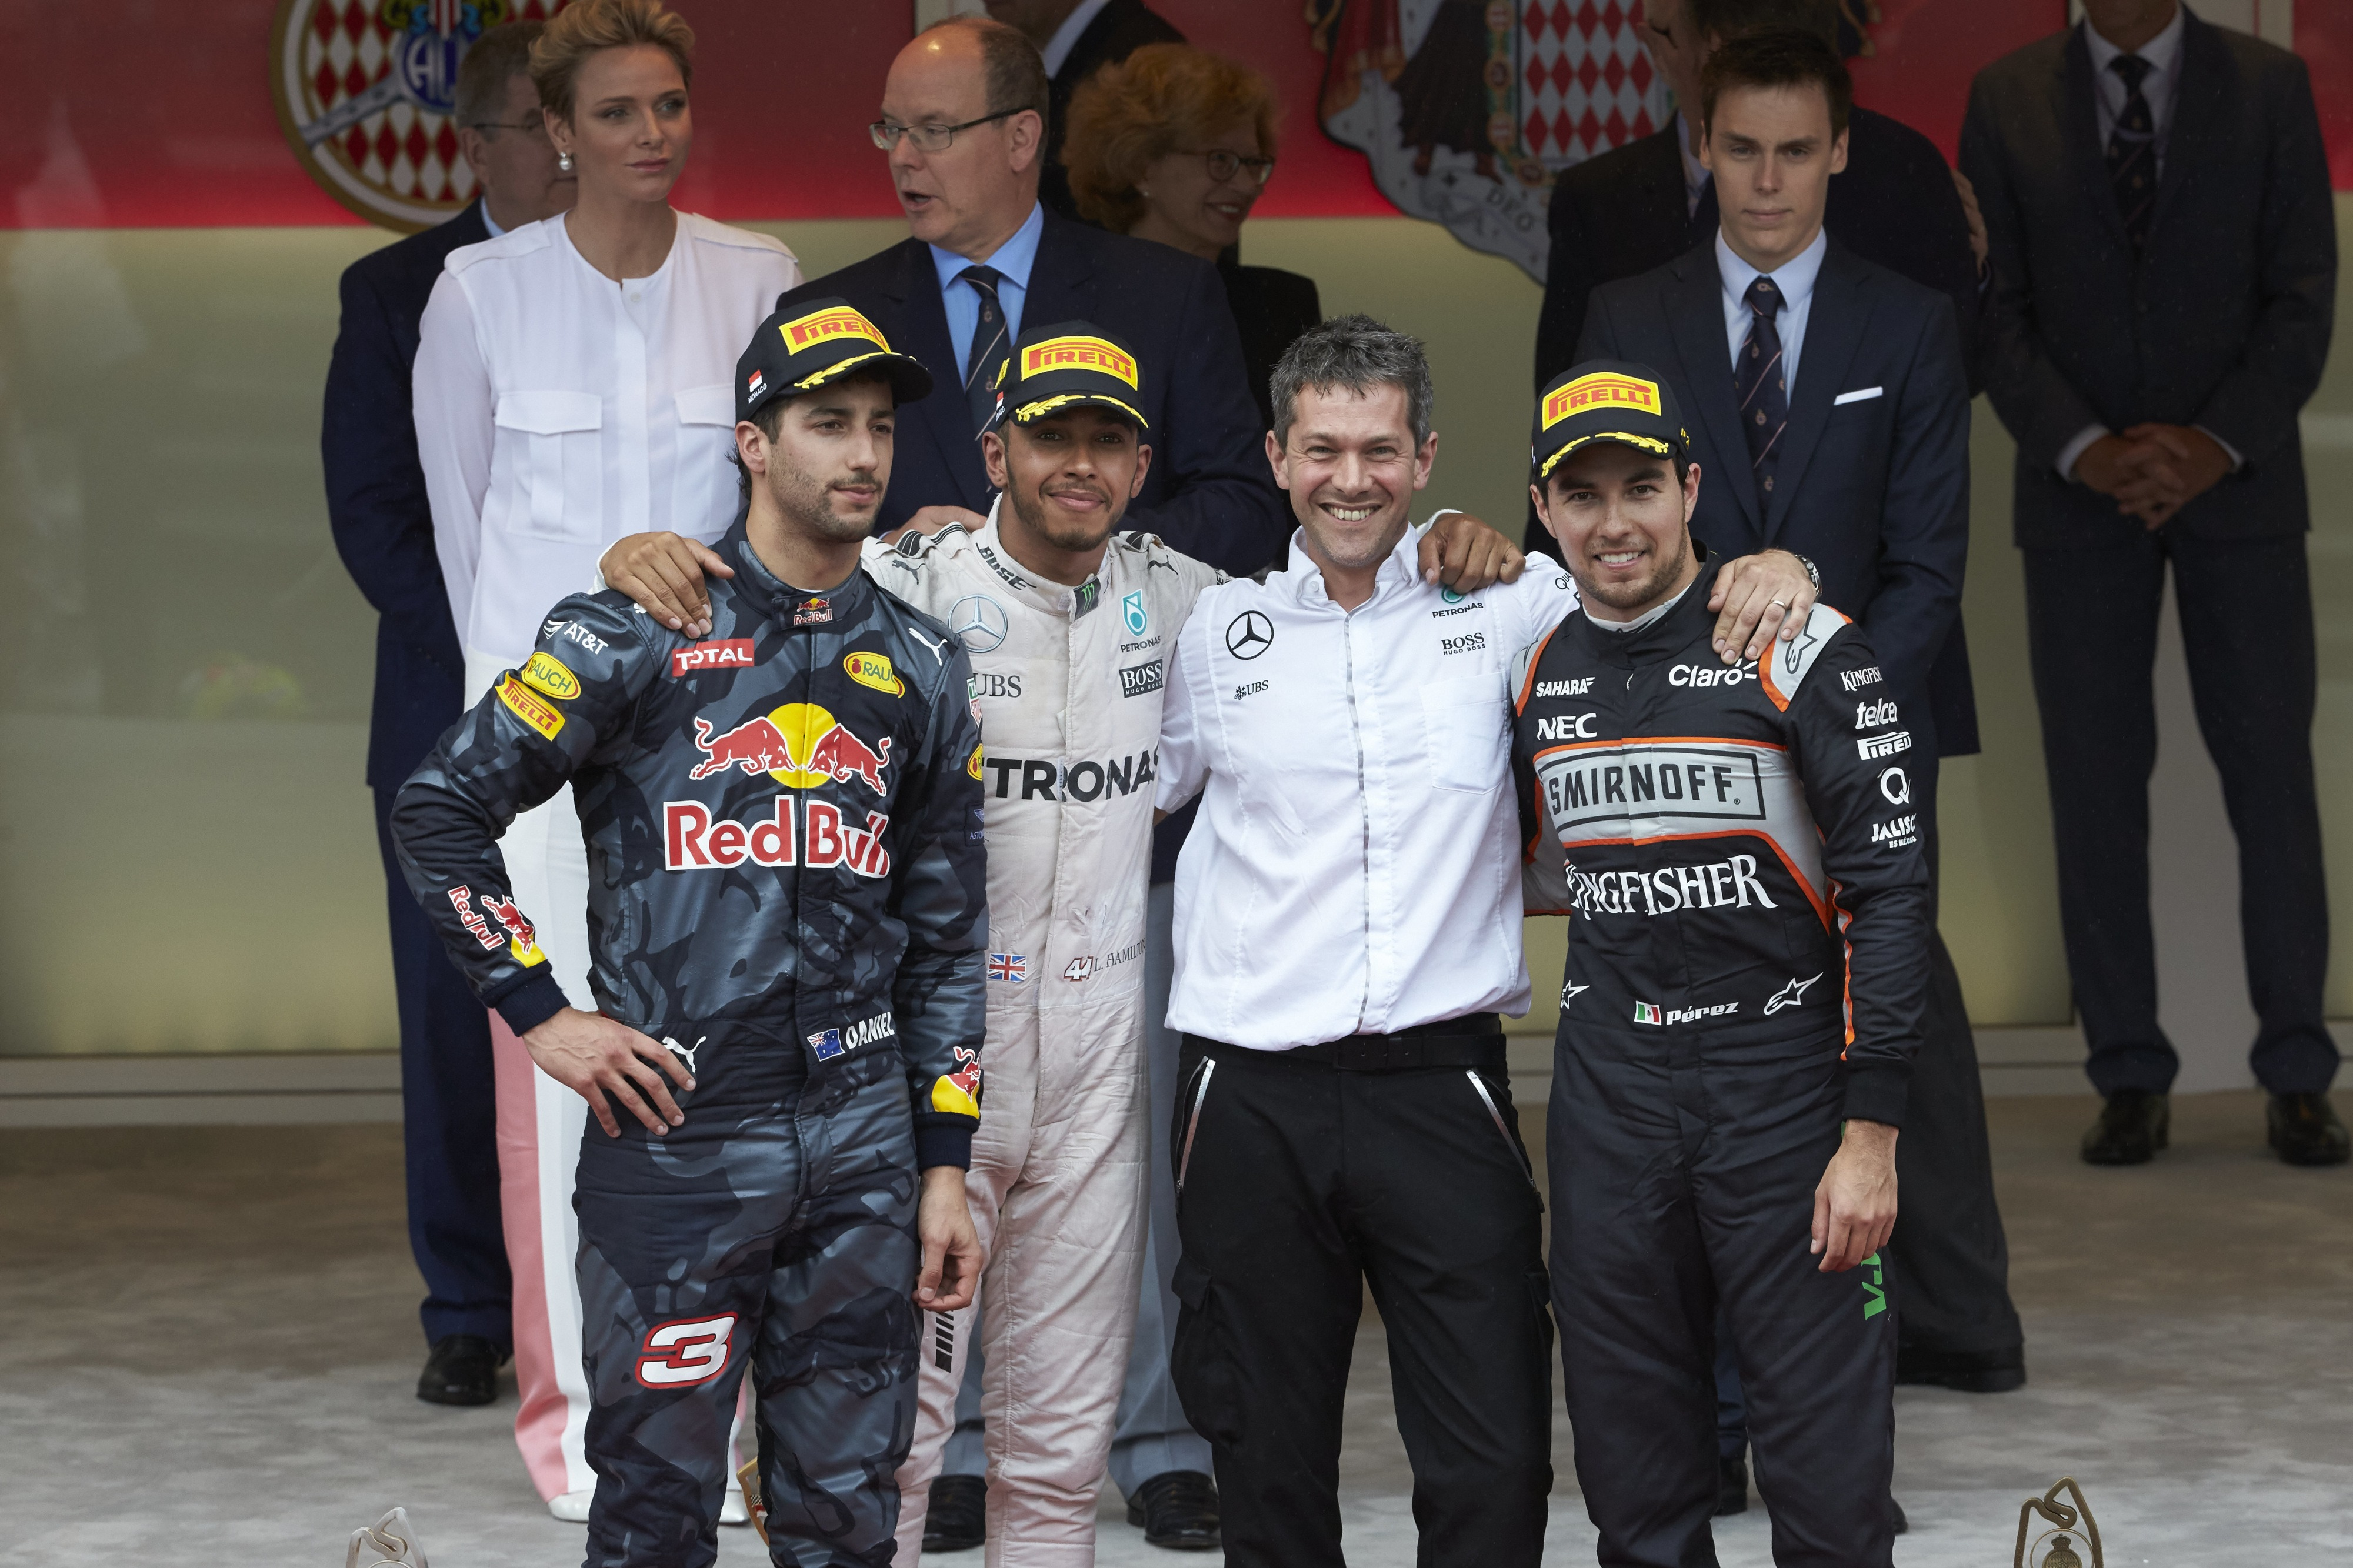 f1 results - photo #38